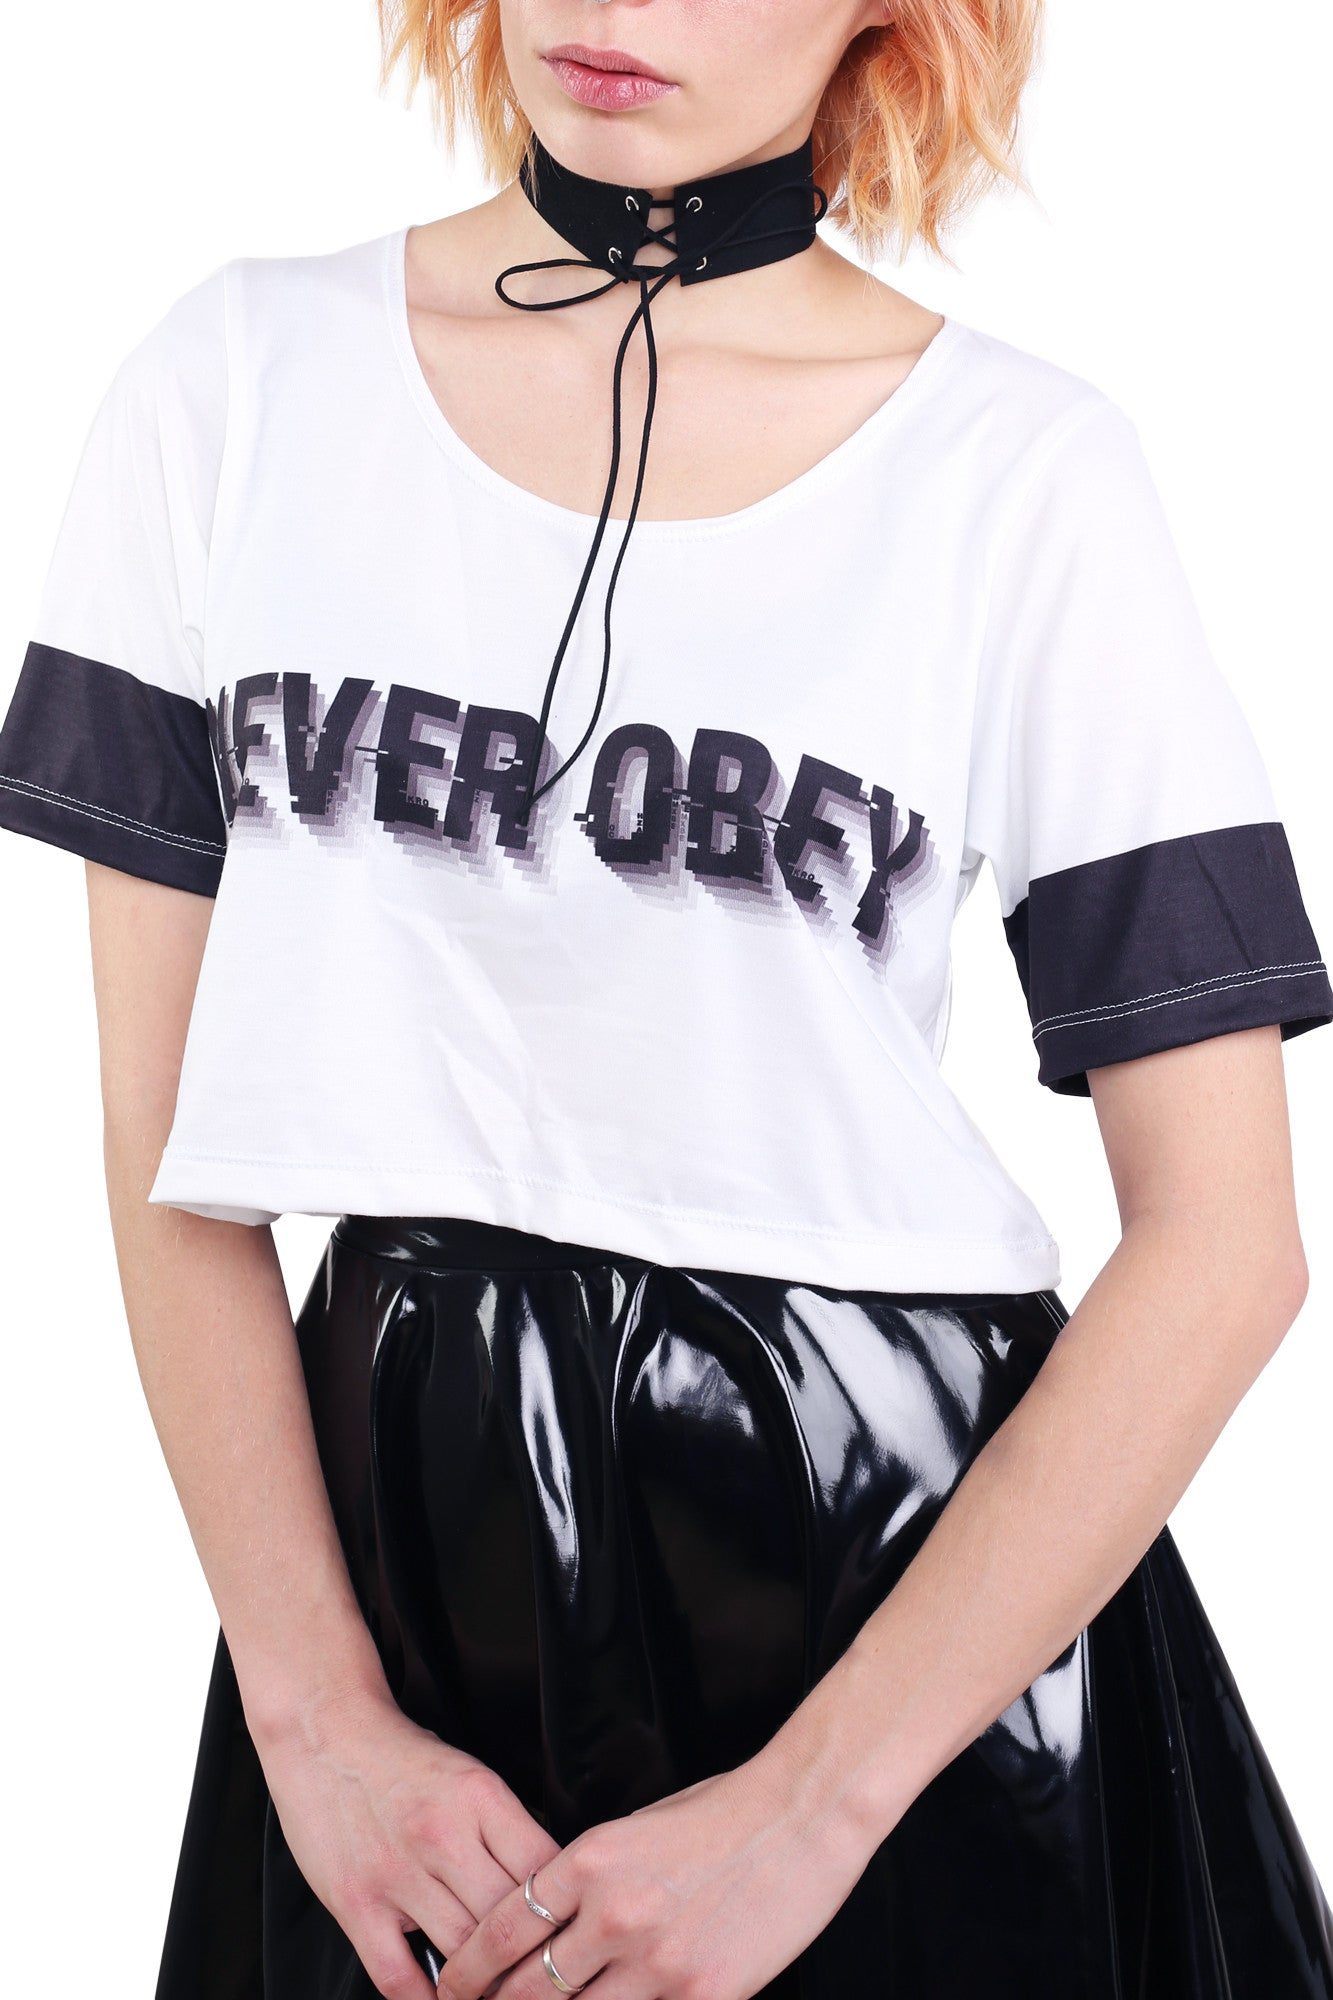 Never Obey Tee Crop